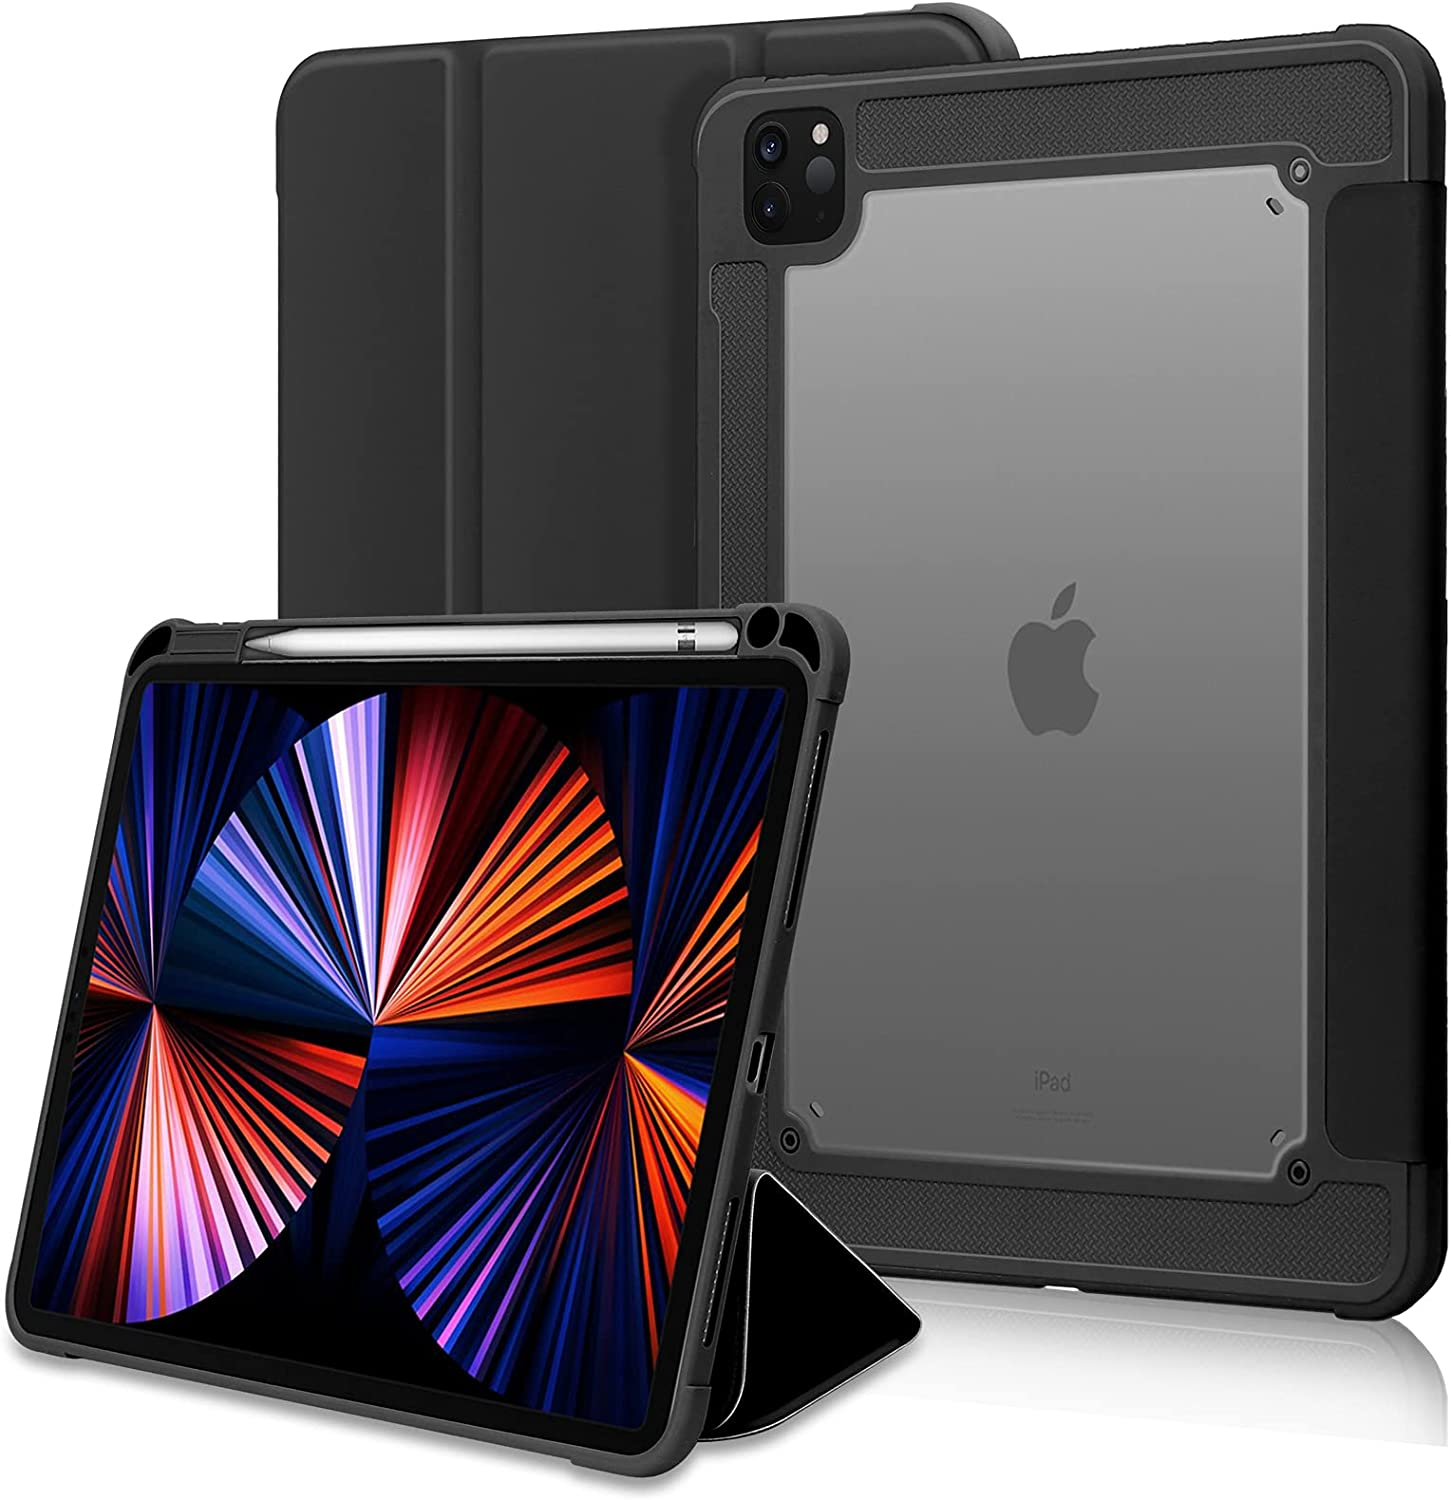 FYY Case for iPad Pro 12.9 2021/2020, [Support 2nd Pencil Charging and Auto Wake/Sleep] Slim Stand Protective Case Cover with Pencil Holder for iPad Pro 12.9 Inch 5th Gen 2021/4th Gen 2020 Black